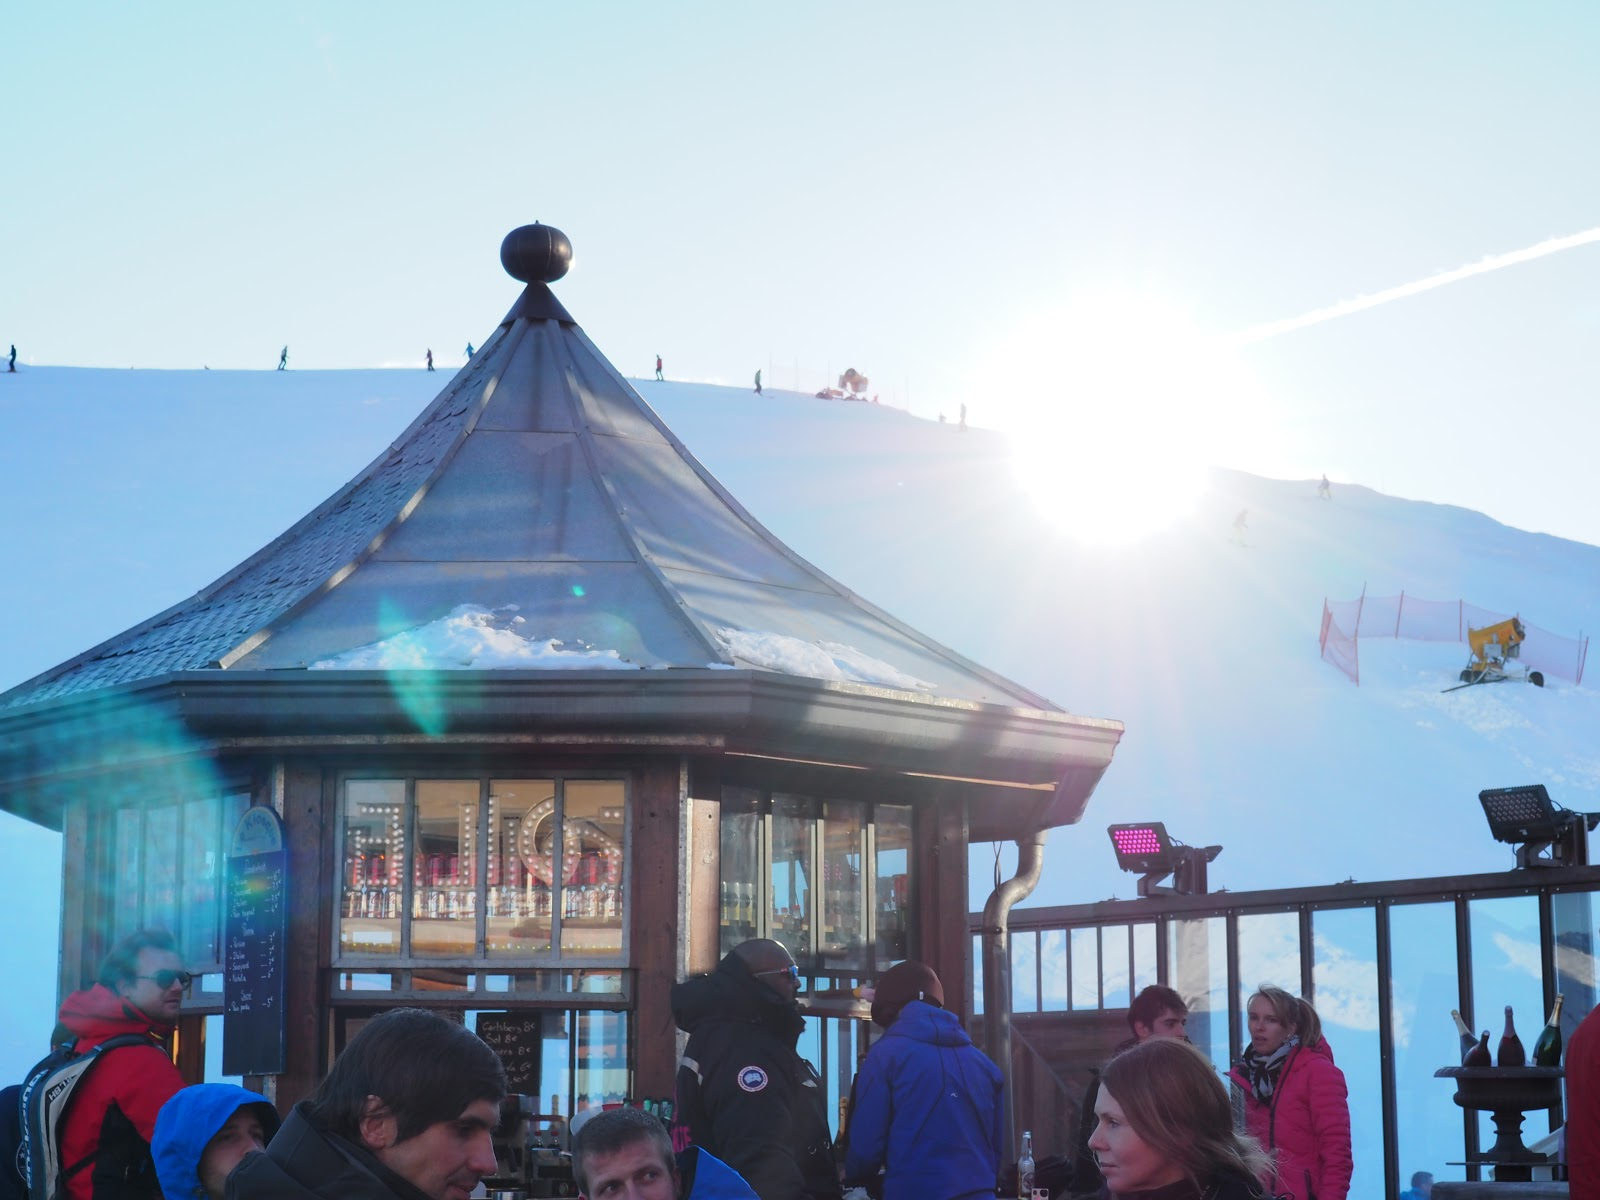 sun setting behind mountain, La Folie Douce, Val d'Isere, France